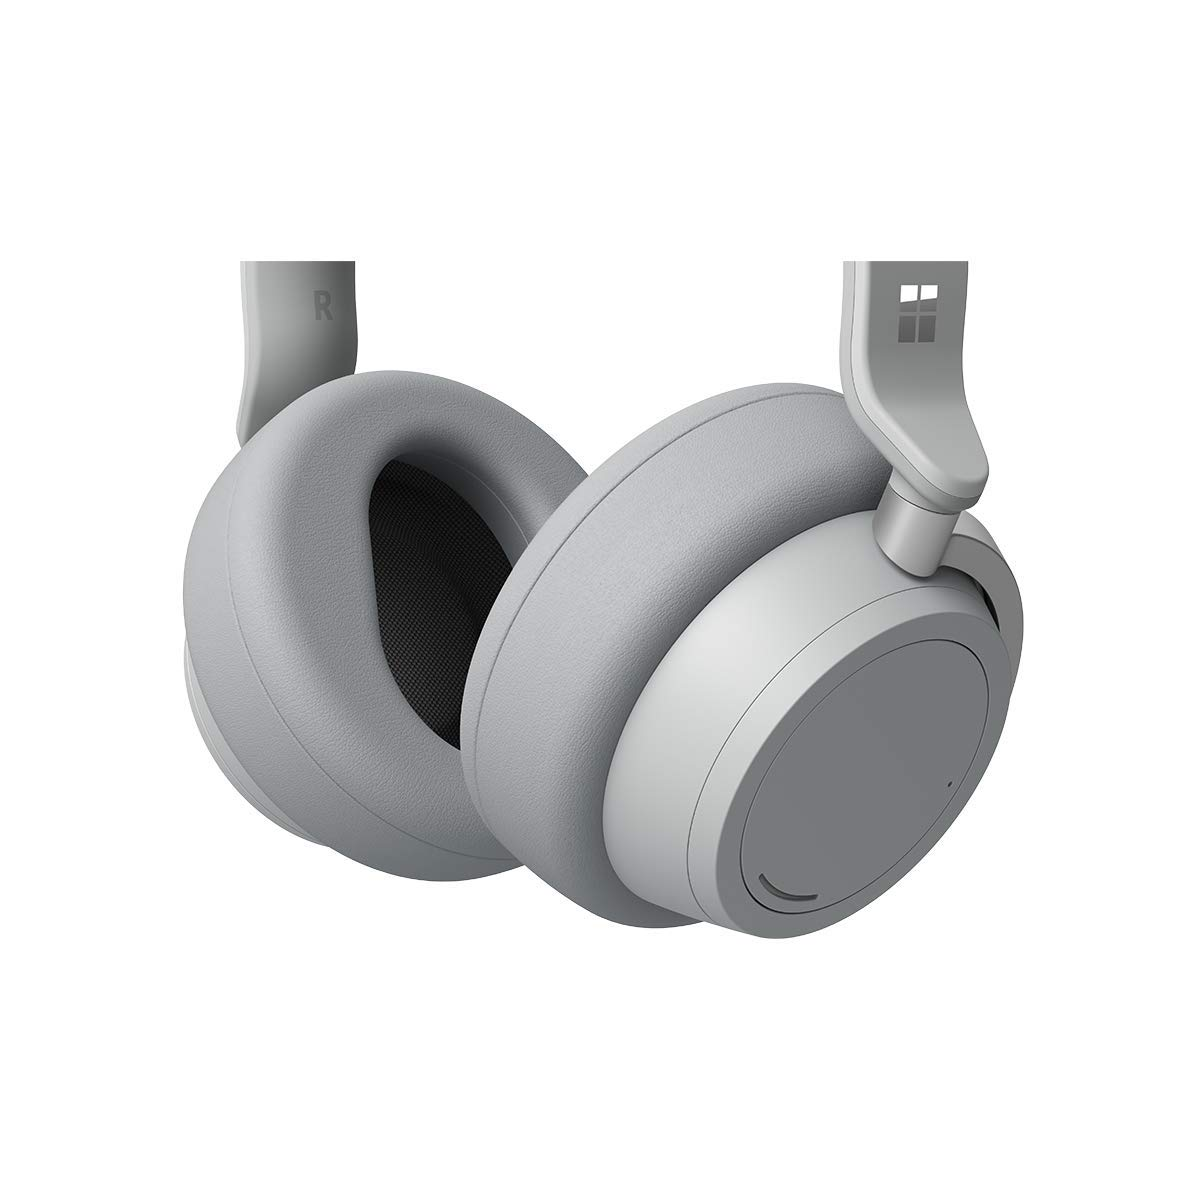 Màj Le Casque Audio Microsoft Surface Headphones Arrive En France